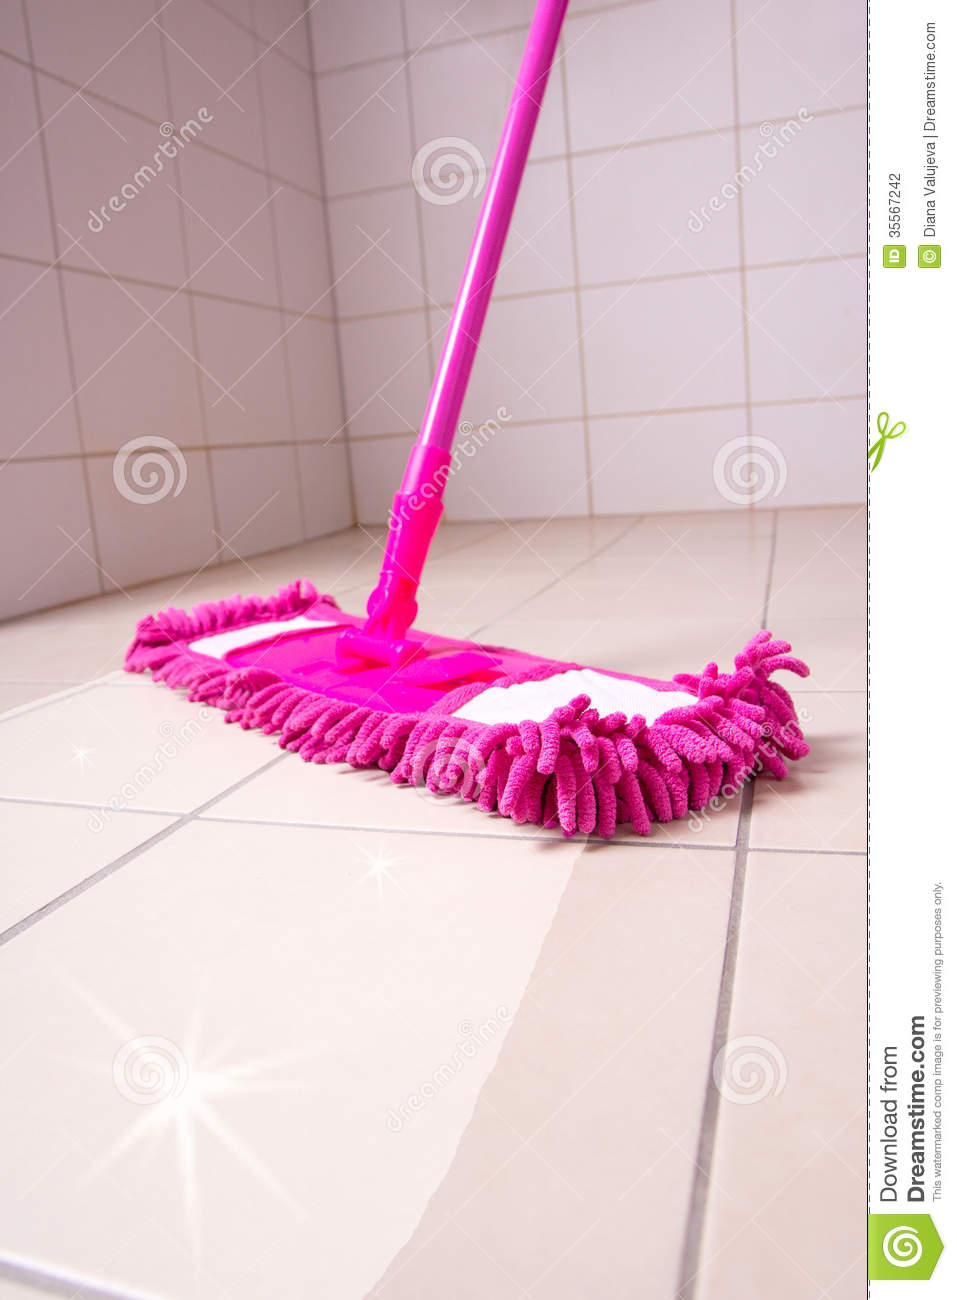 Cleaning the floor with pink mop stock photo image of polish cleaning the floor with pink mop dailygadgetfo Choice Image